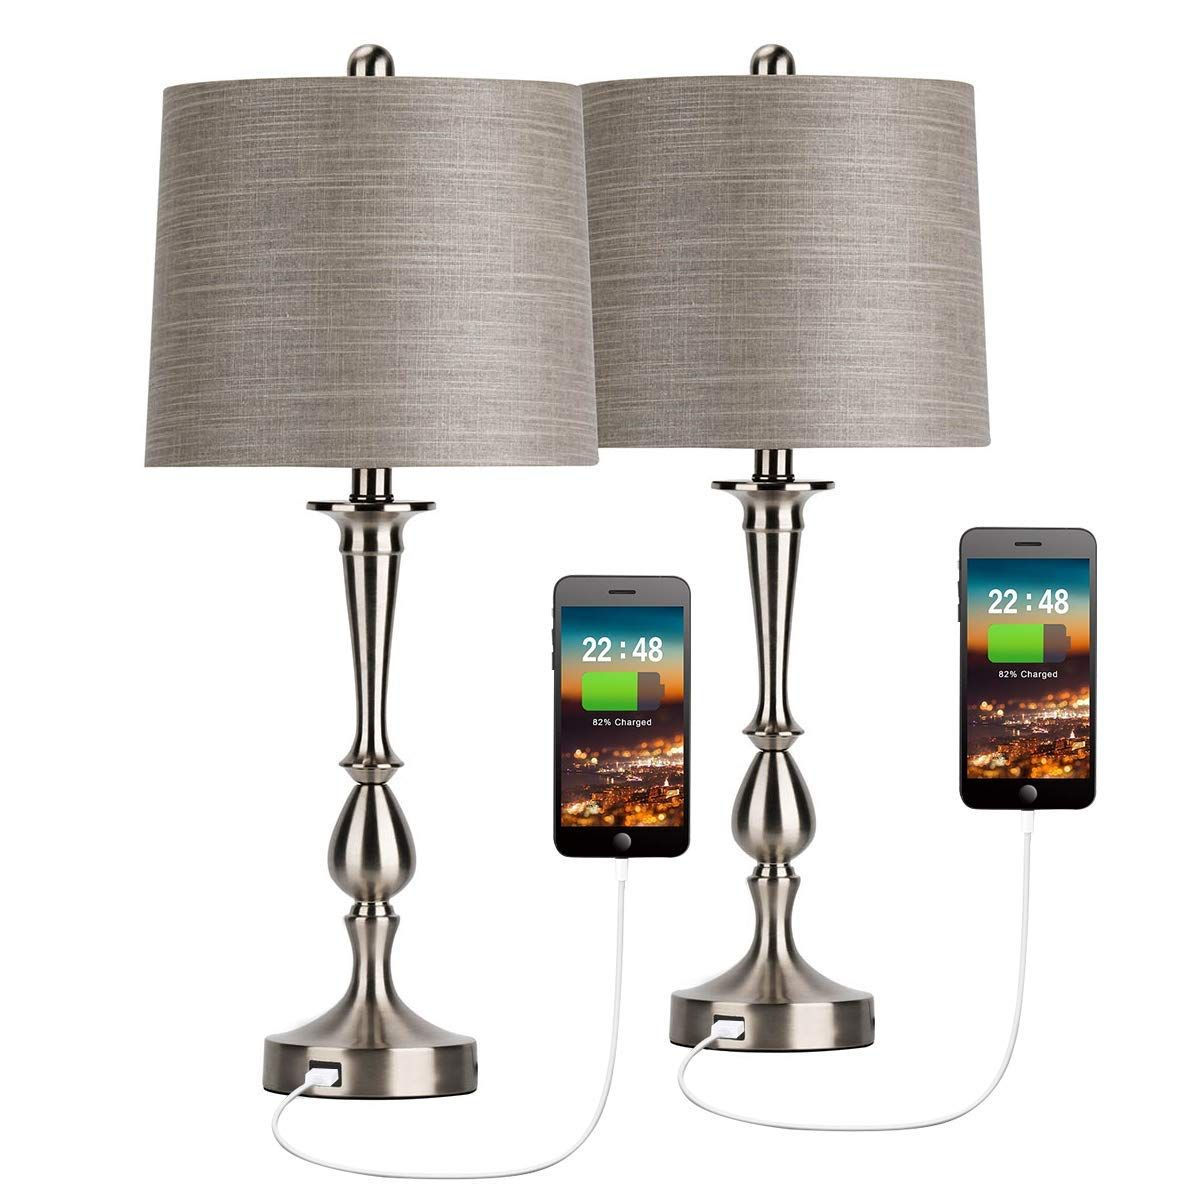 Oneach Usb Table Lamp Set Of 2 Modern Bedside Desk Lamp With Usb